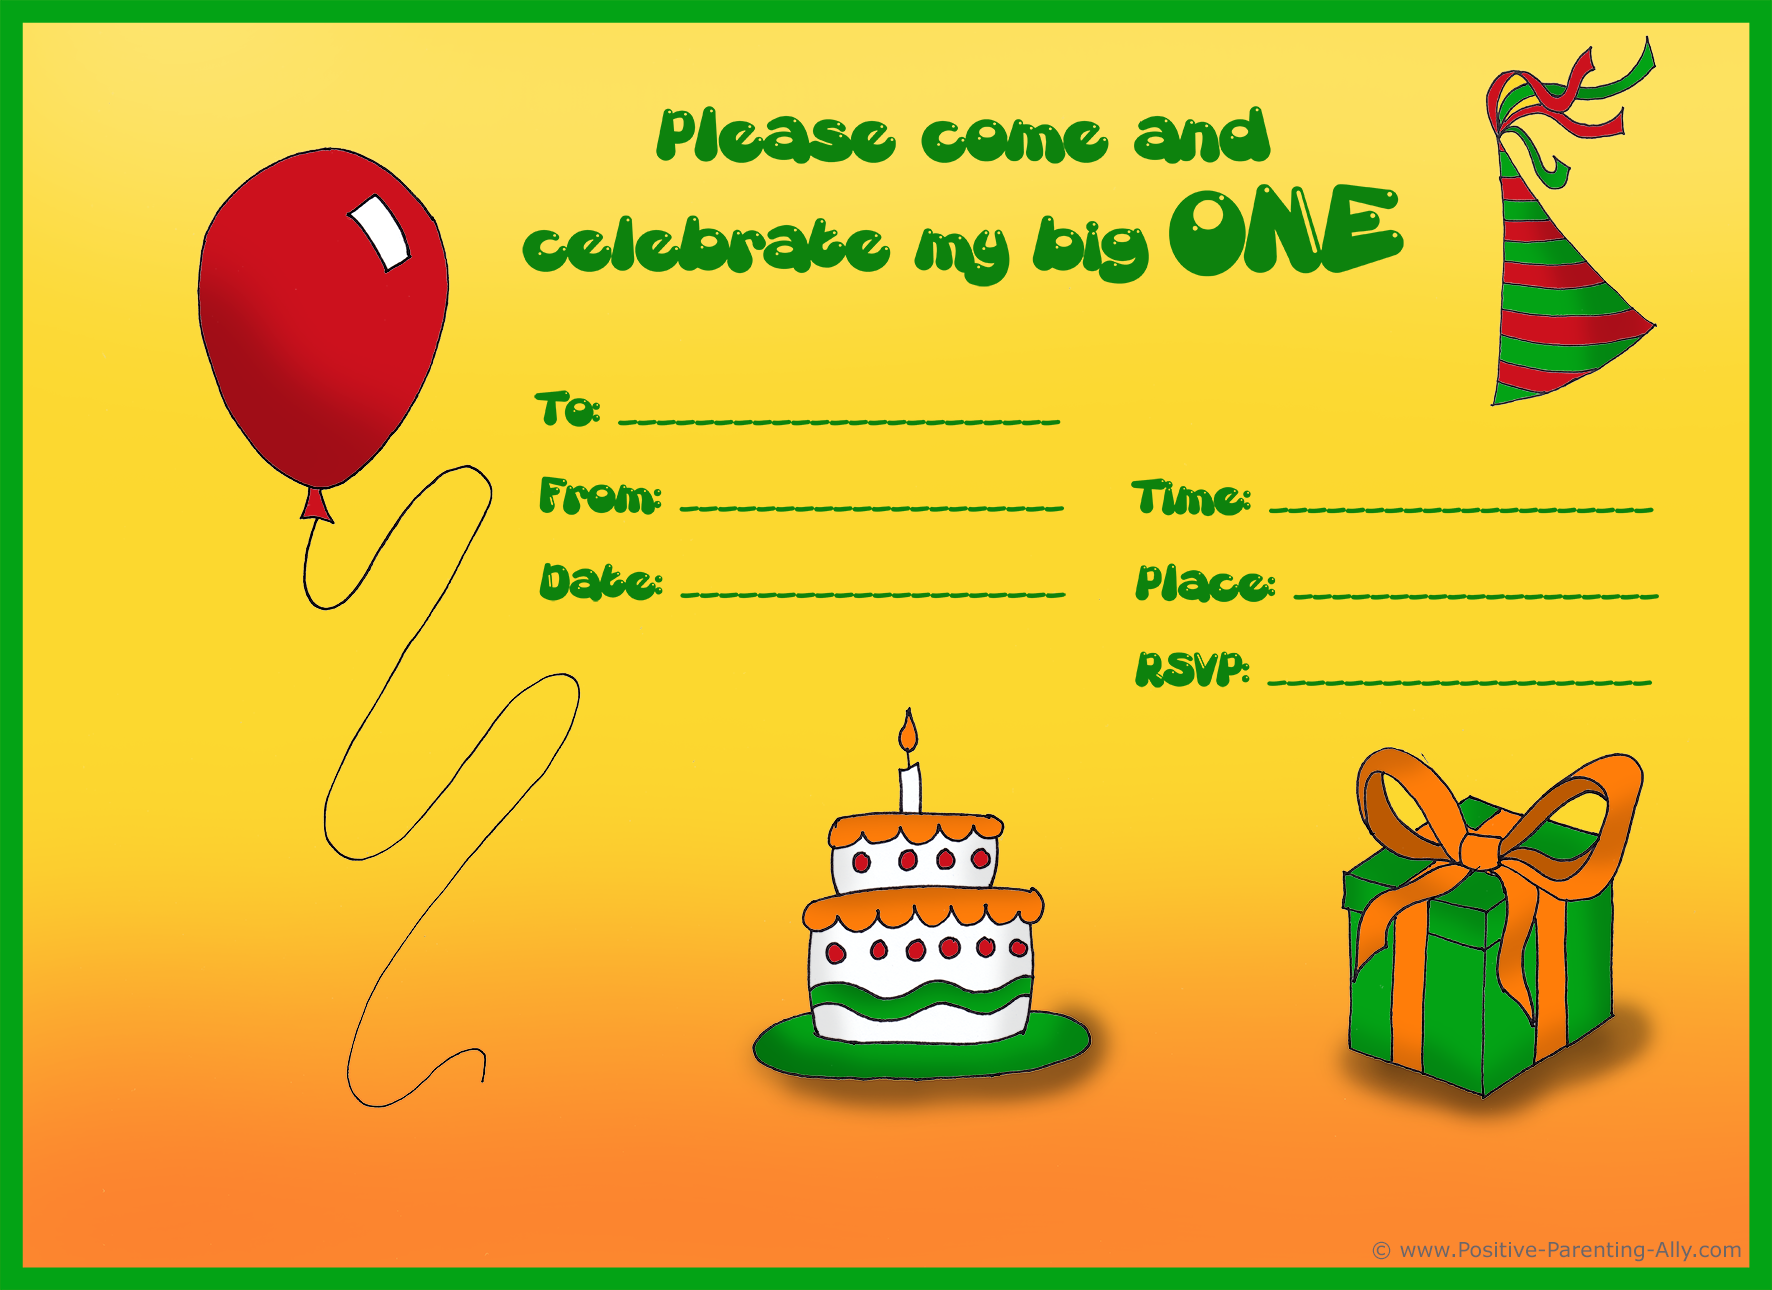 Finished birhday invitation example for 1st birthday.